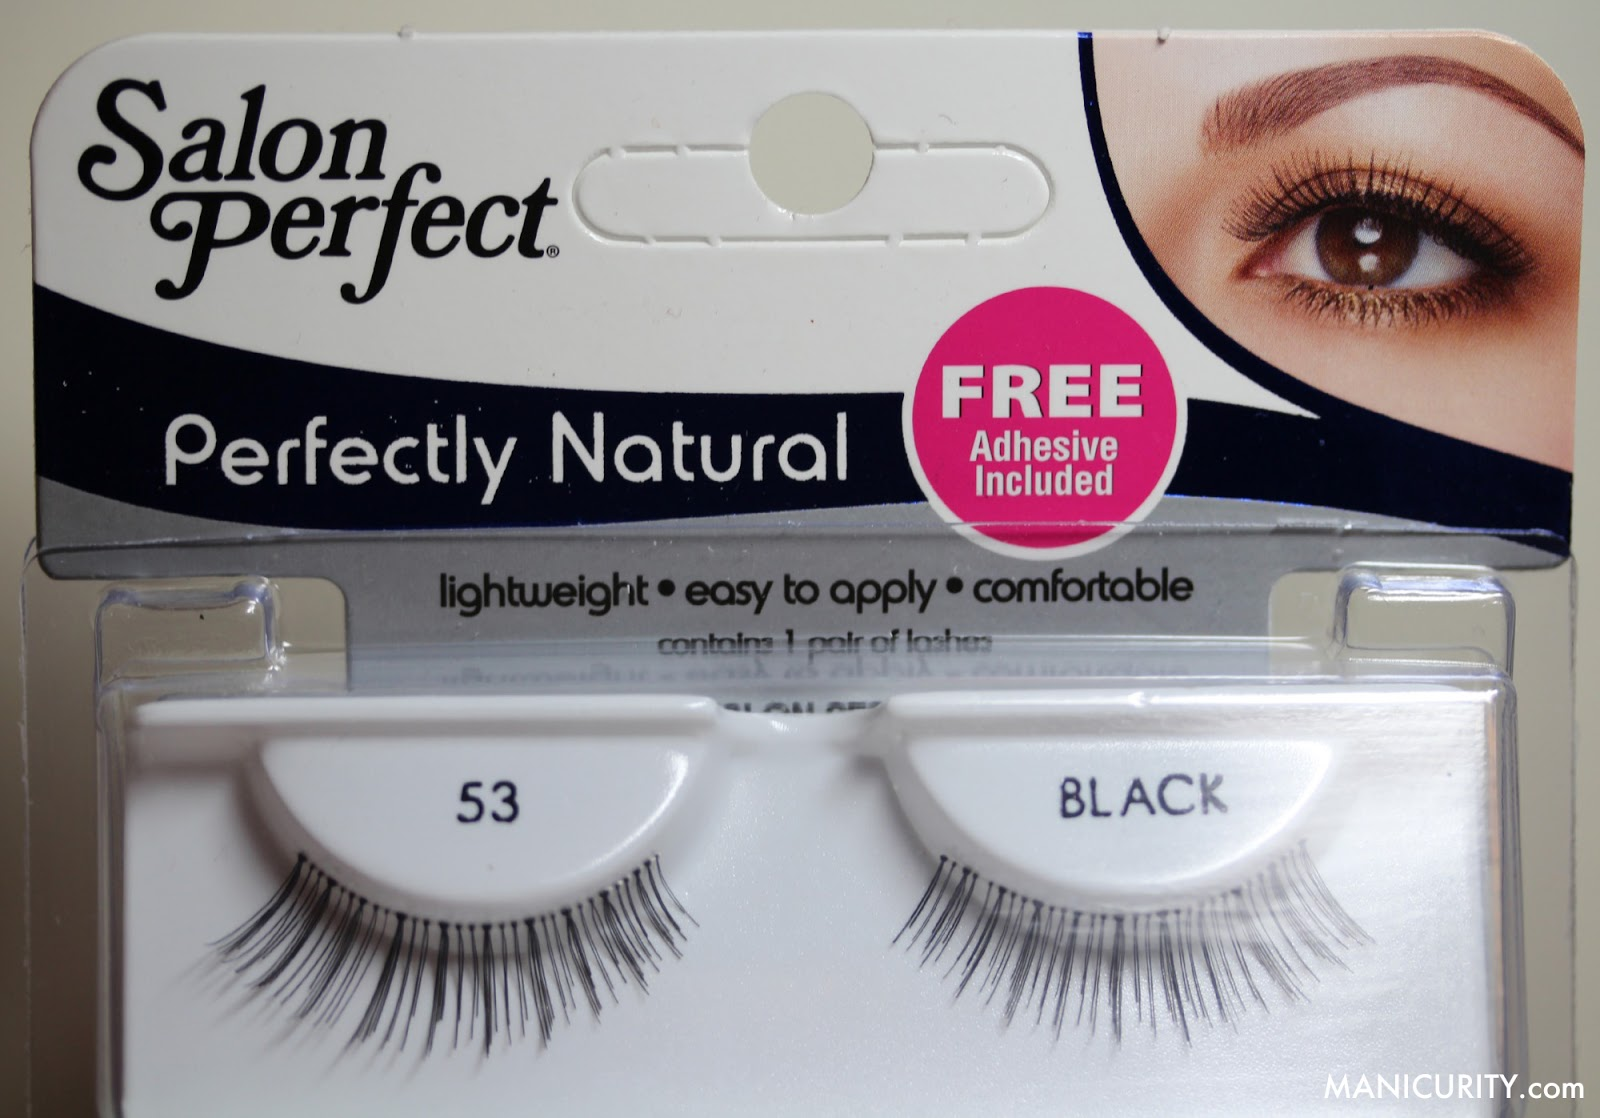 Manicurity - Ipsy Glam Bag December 2013 Hits & Misses | Salon Perfect Perfectly Natural Strip Eyelashes #53 black